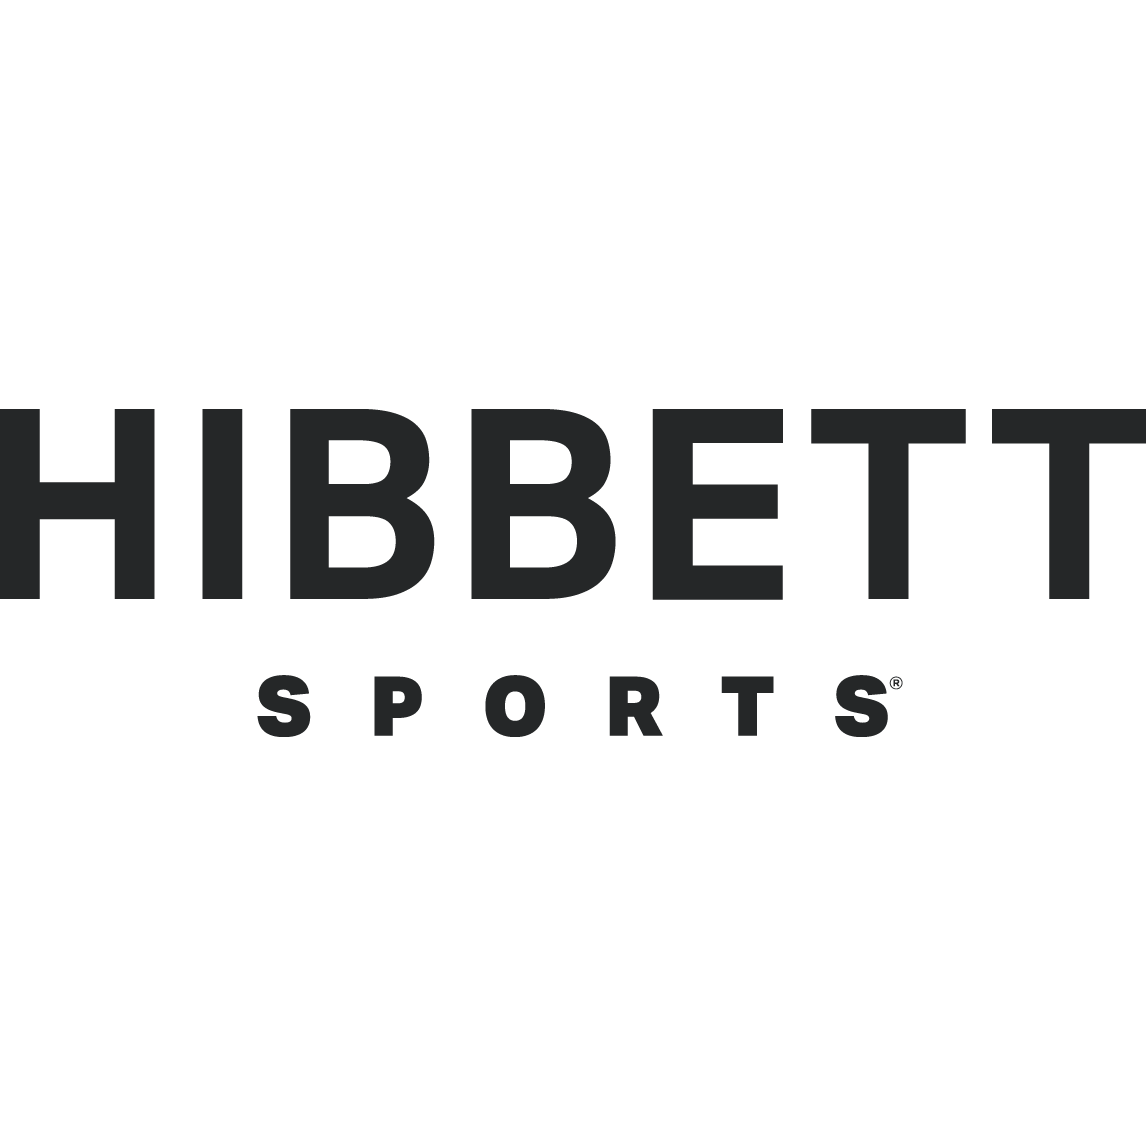 Hibbett Sports - Winchester, KY 40391 - (859)745-7717 | ShowMeLocal.com